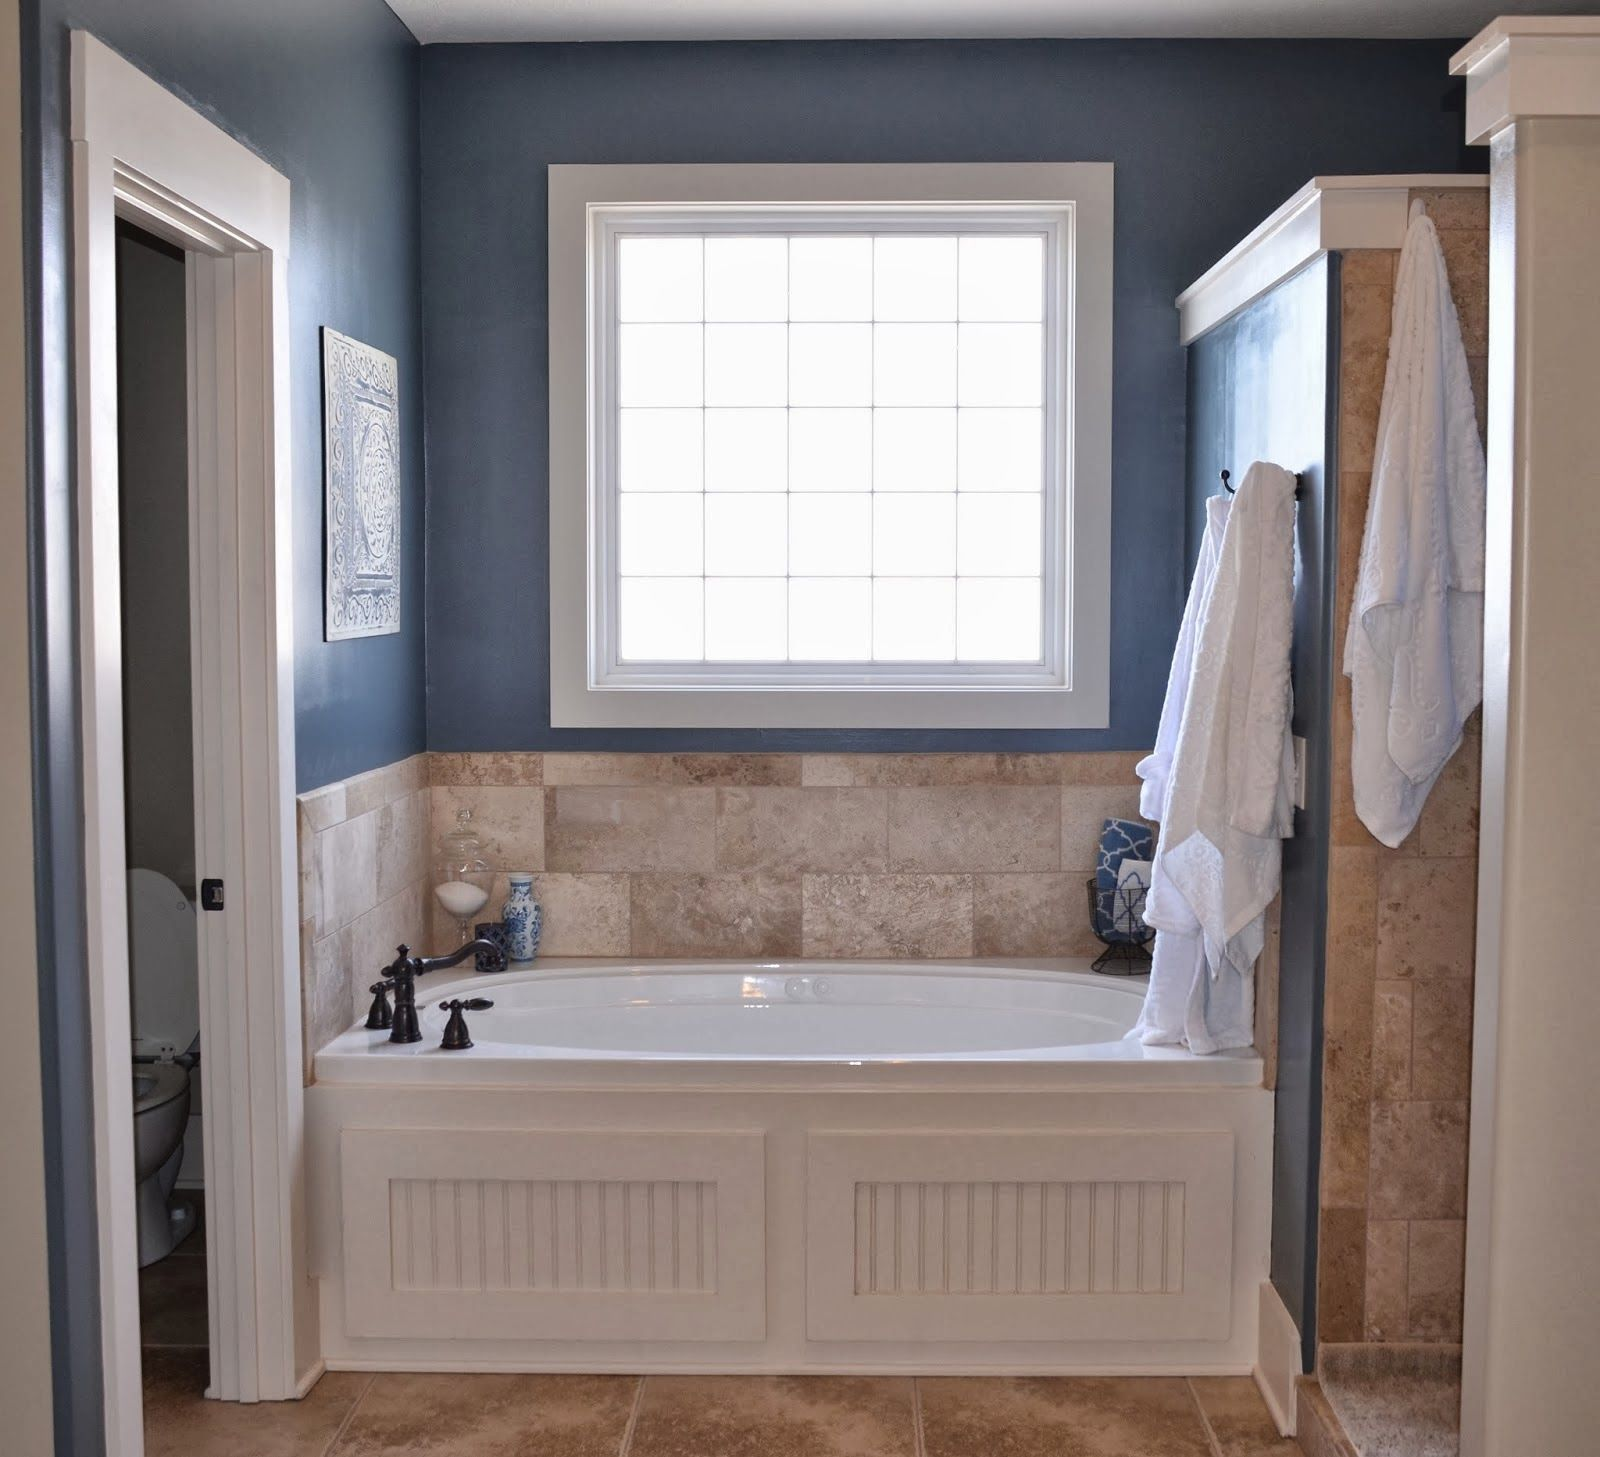 Sherwin Williams Slate Tile And Sherwin Williams Urban Putty Bathroom Paint Master Bathroom